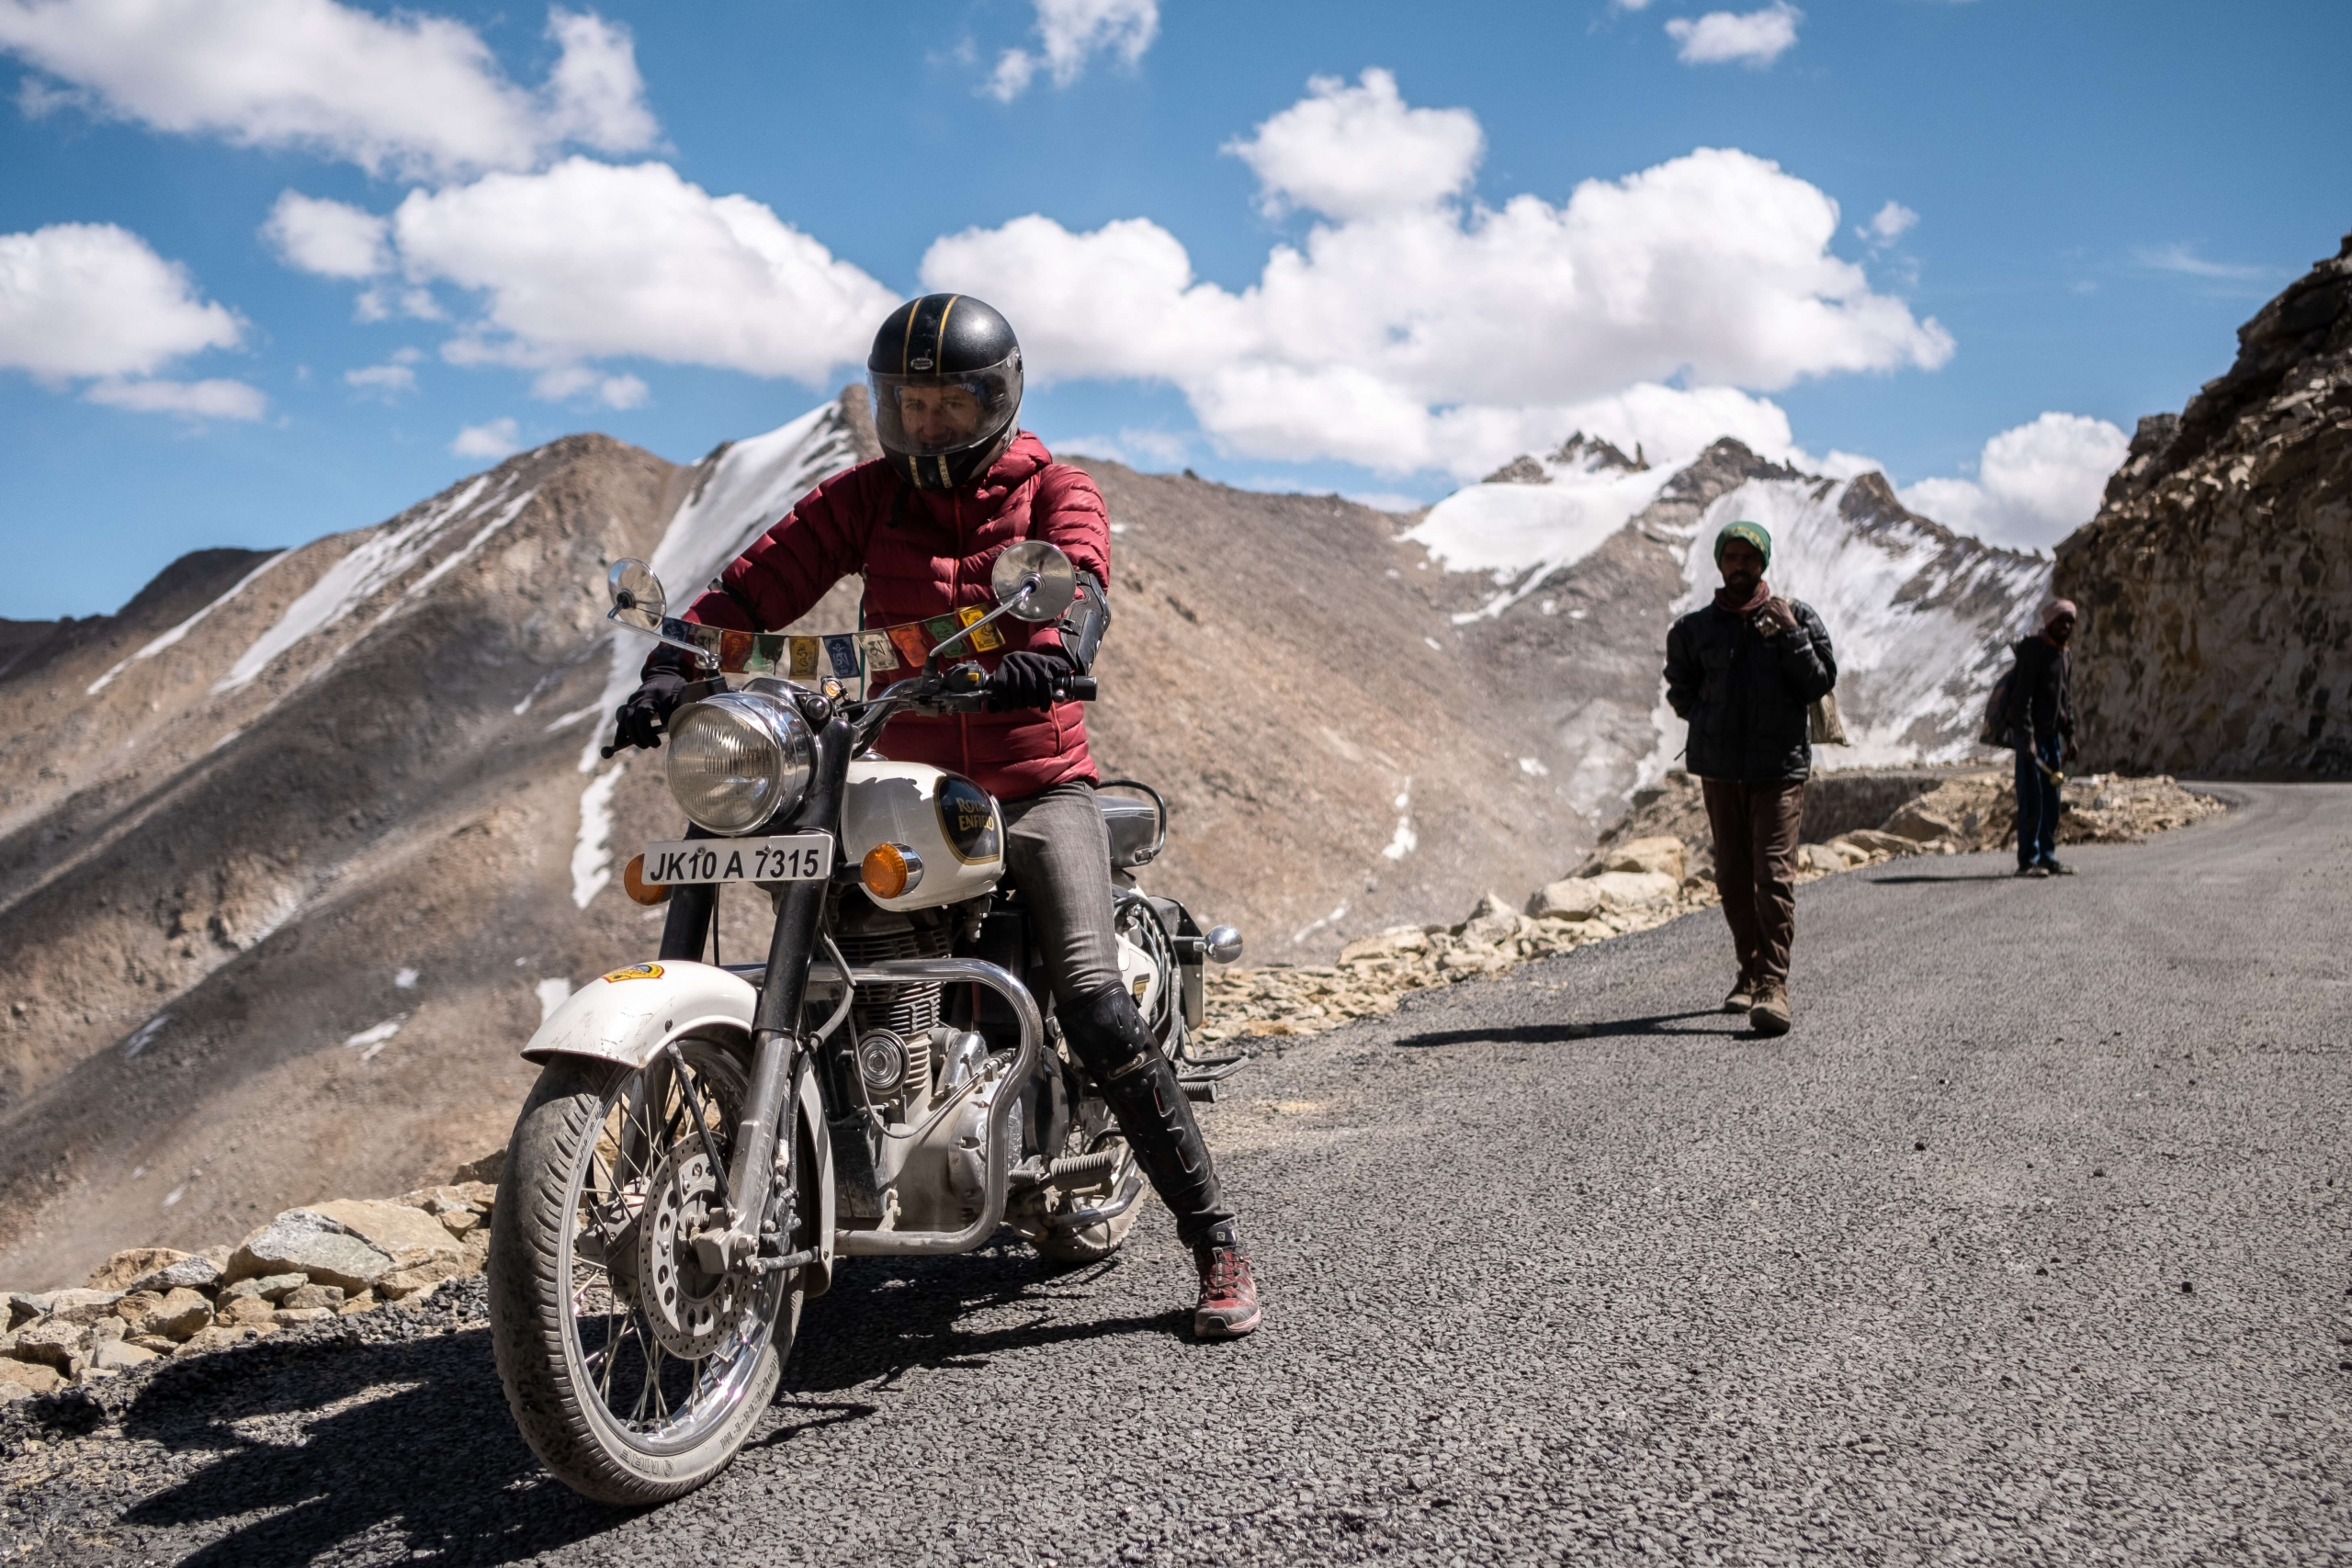 Iza the rider - Ladakh